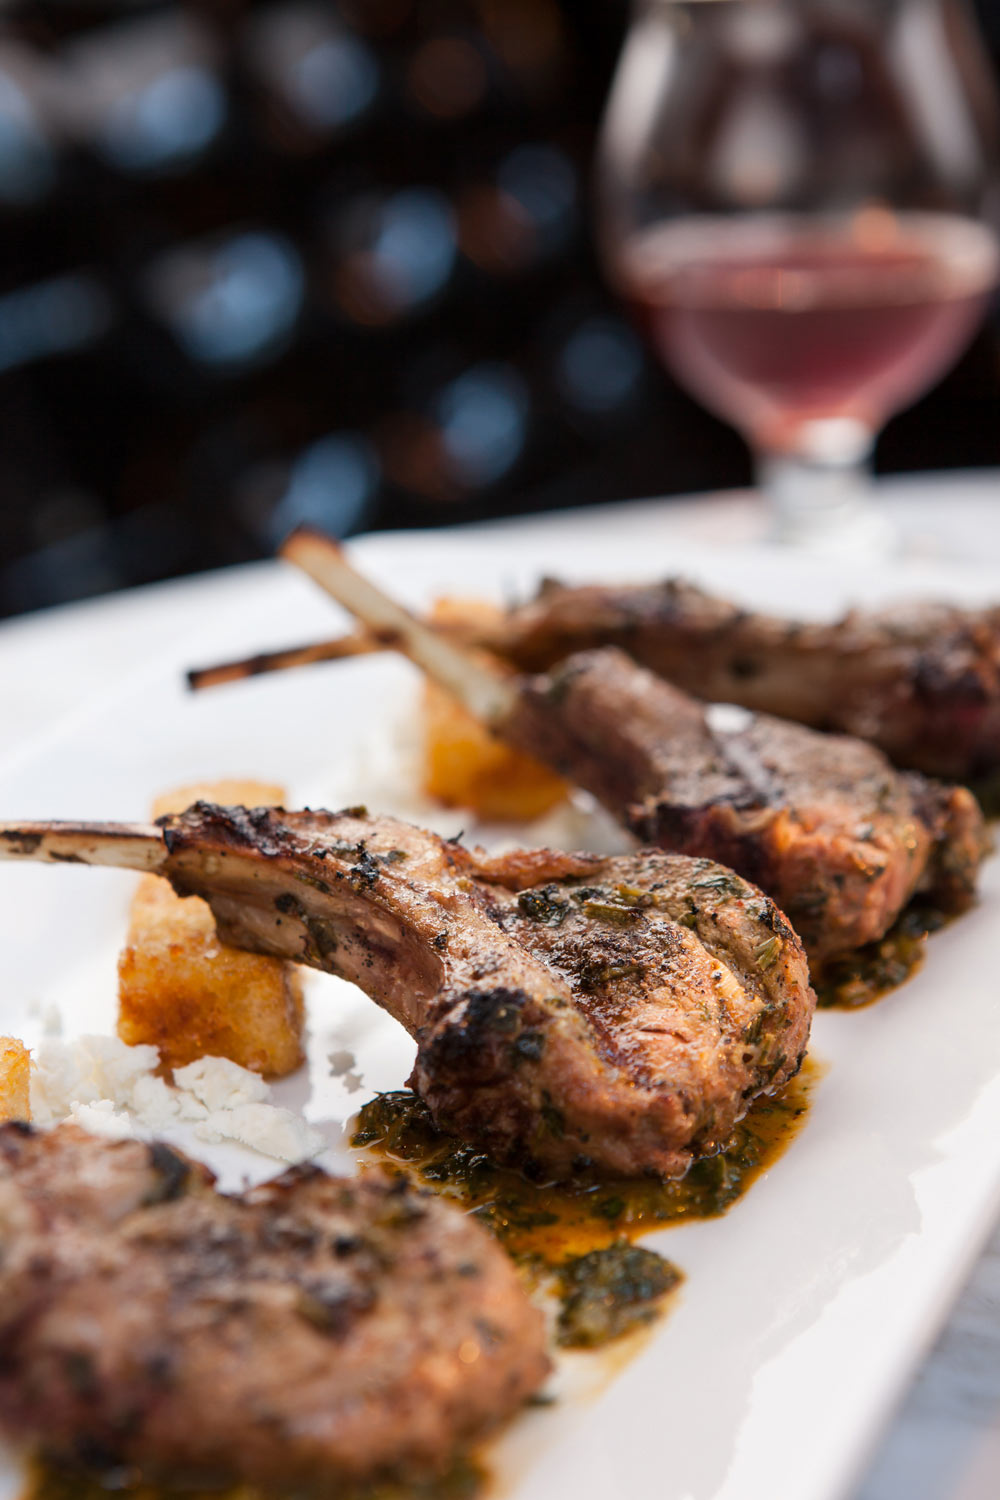 Food_Photography_lamb_chops_happy_hour_mix_sacramento_small_bites_polenta_grilled.jpg